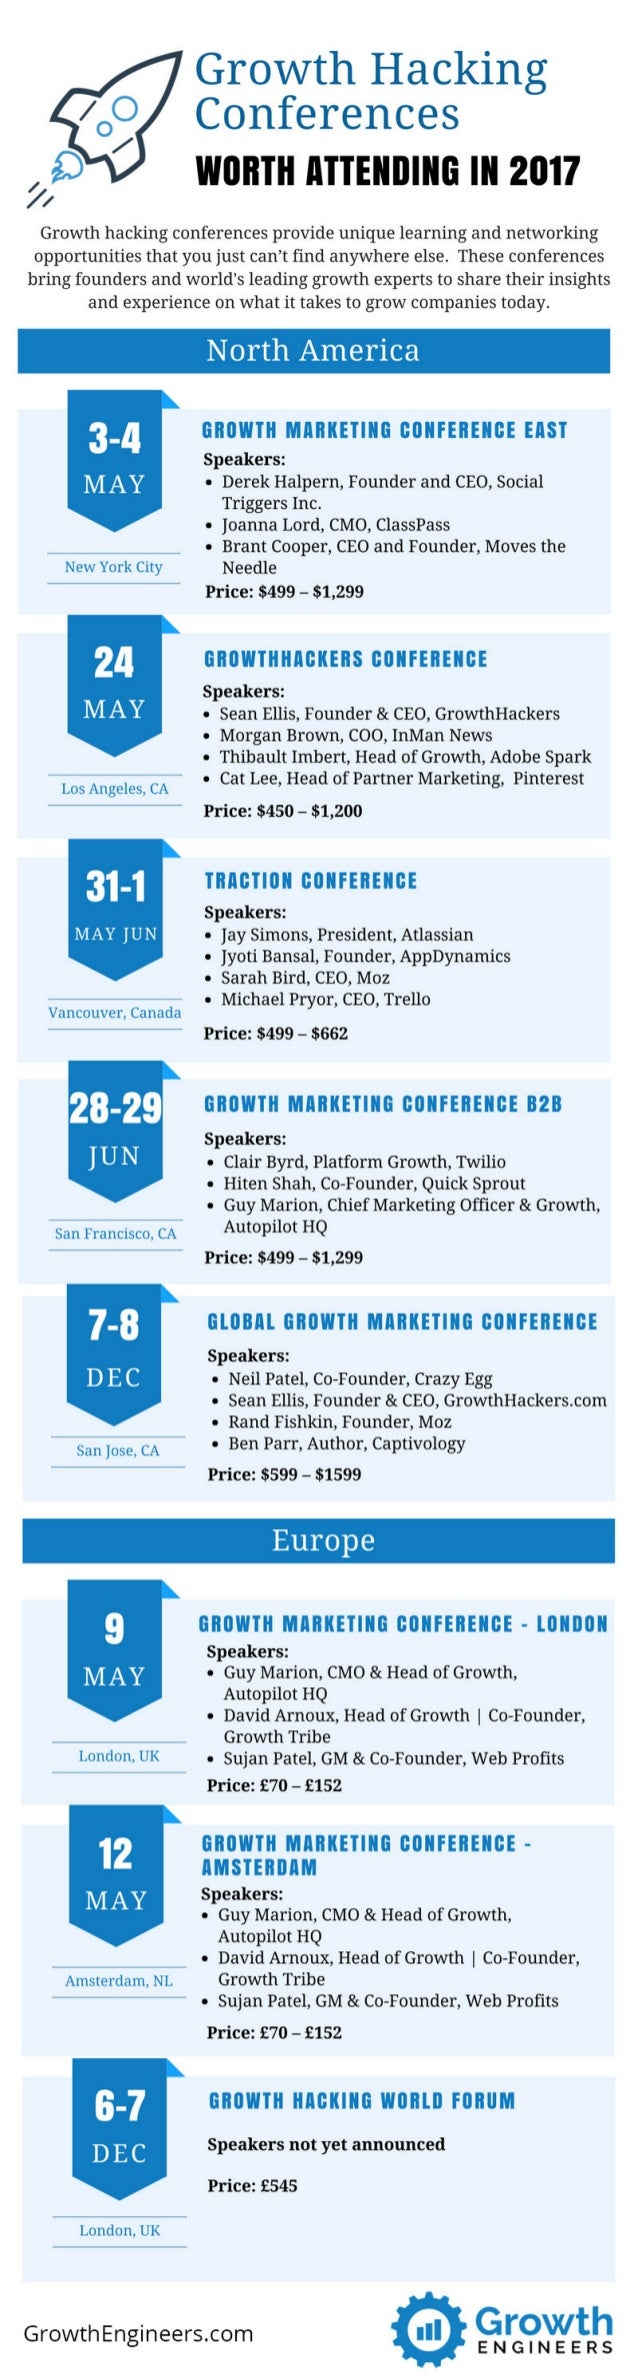 Growth hacking conferences worth attending in 2017